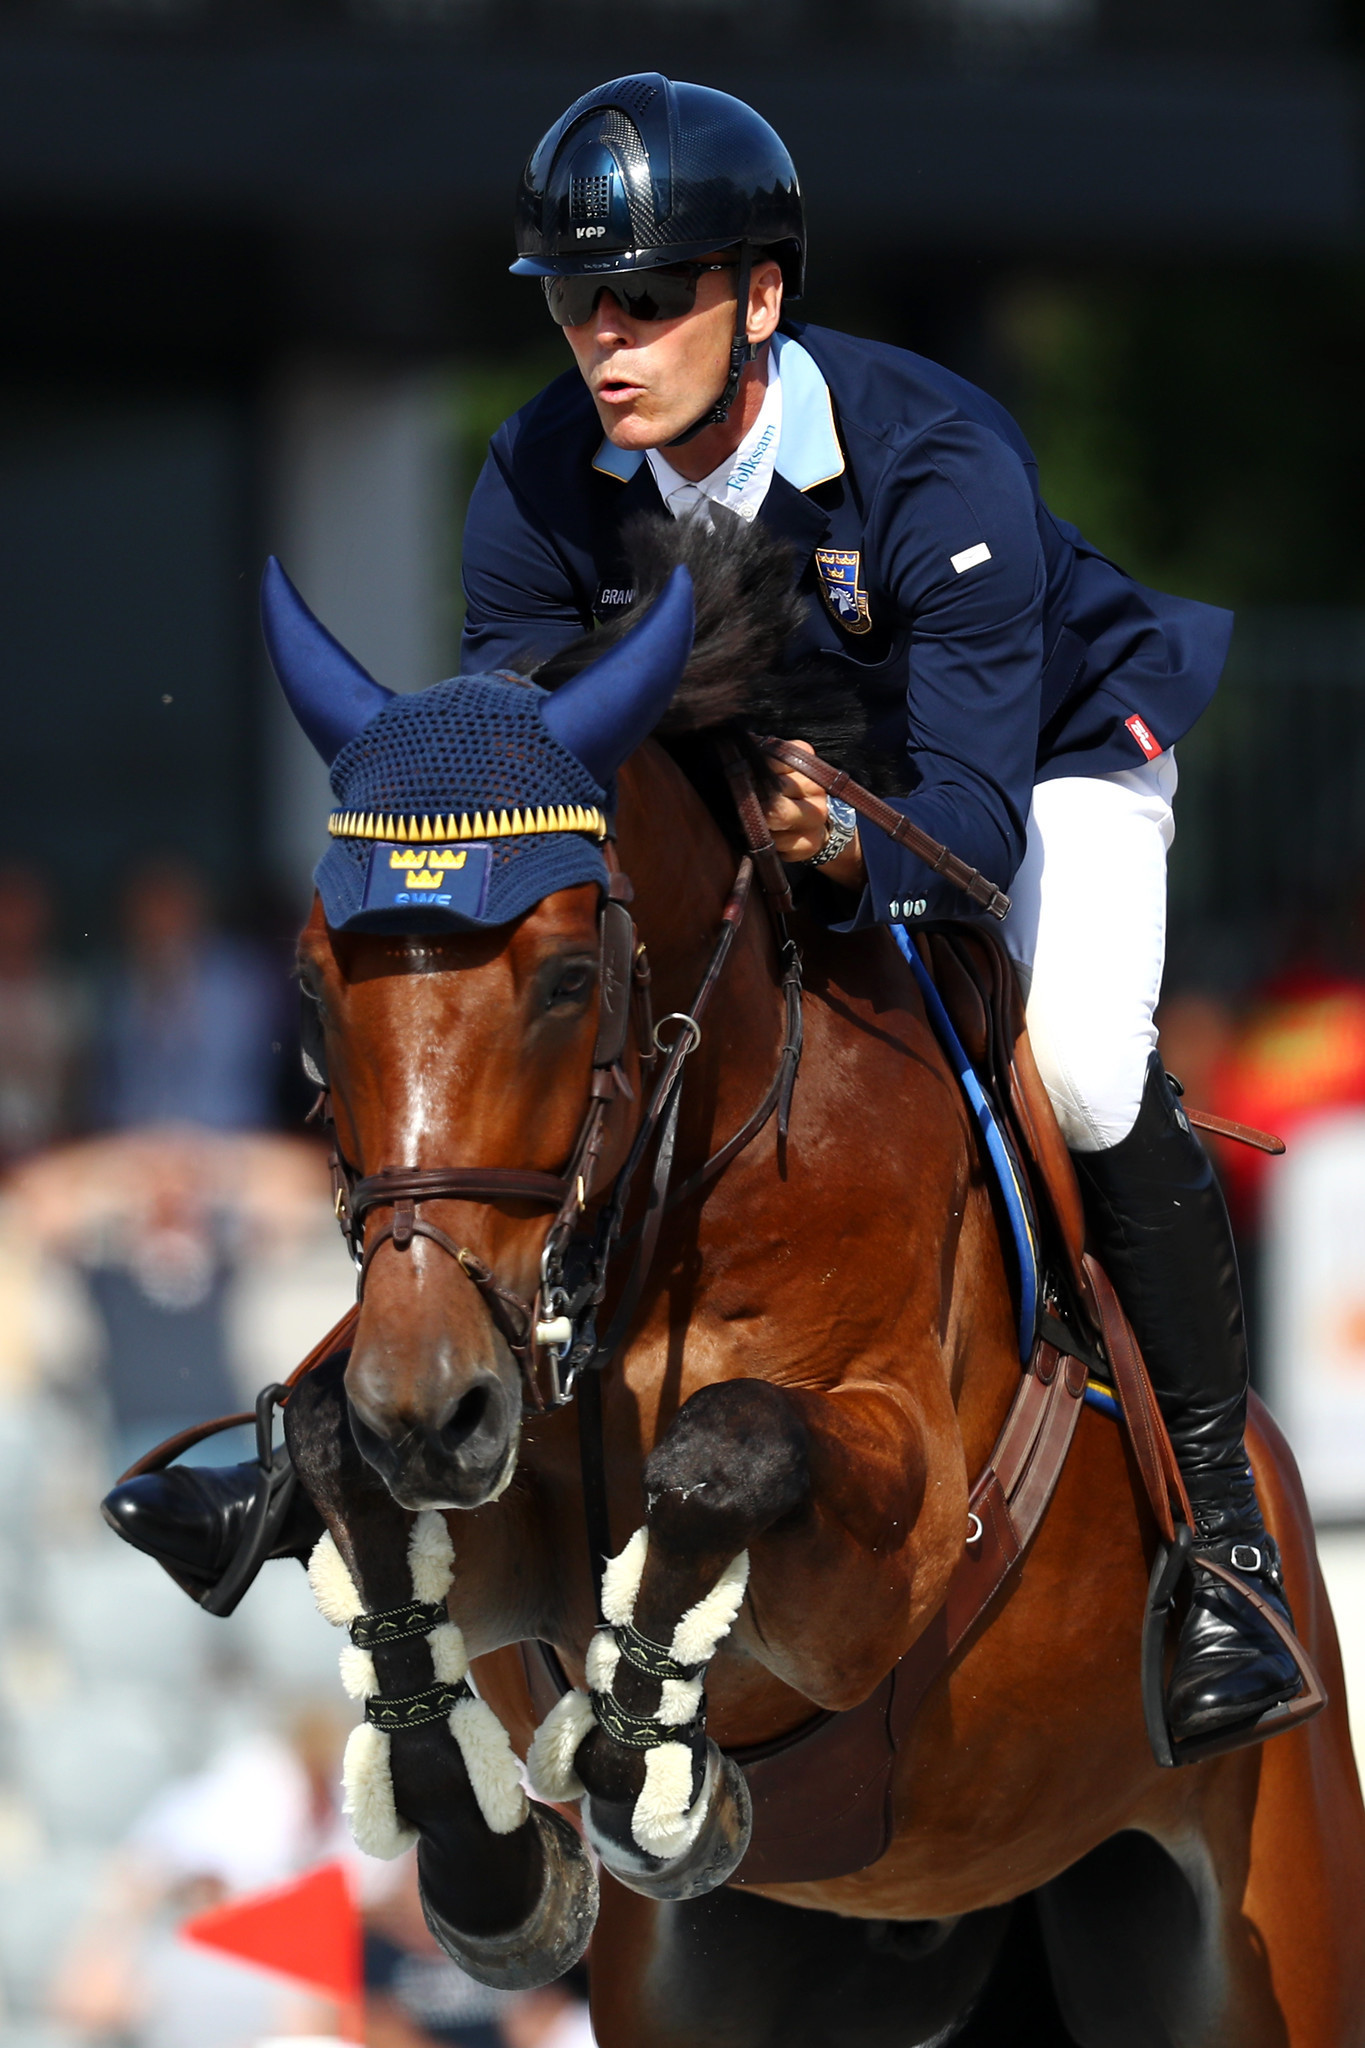 Peder Fredricson of Sweden, with H&M All In, dropped to eighth in the individual competition at Rotterdam Arena ©Getty Images